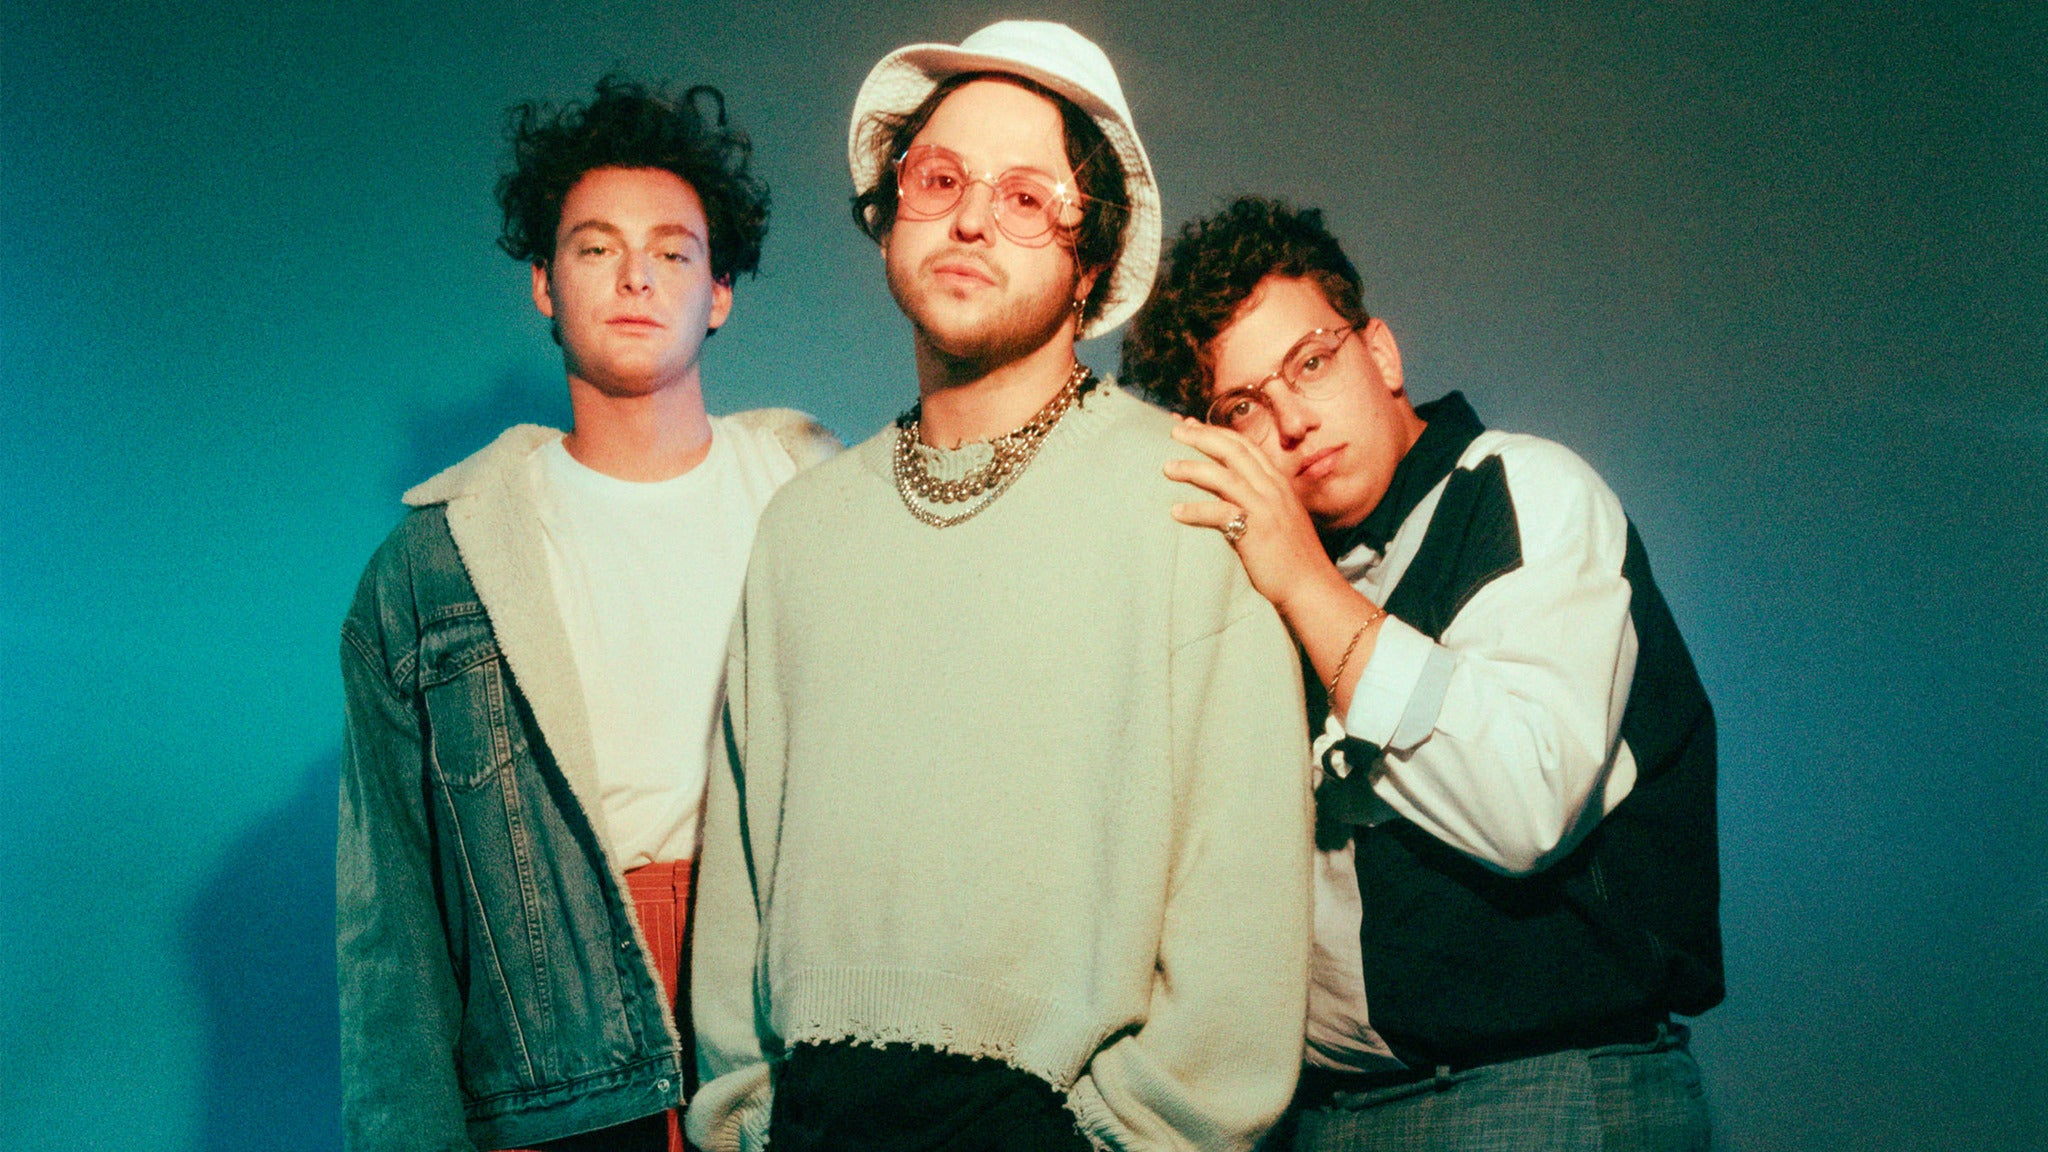 lovelytheband & Sir Sly pre-sale password for early tickets in Chicago